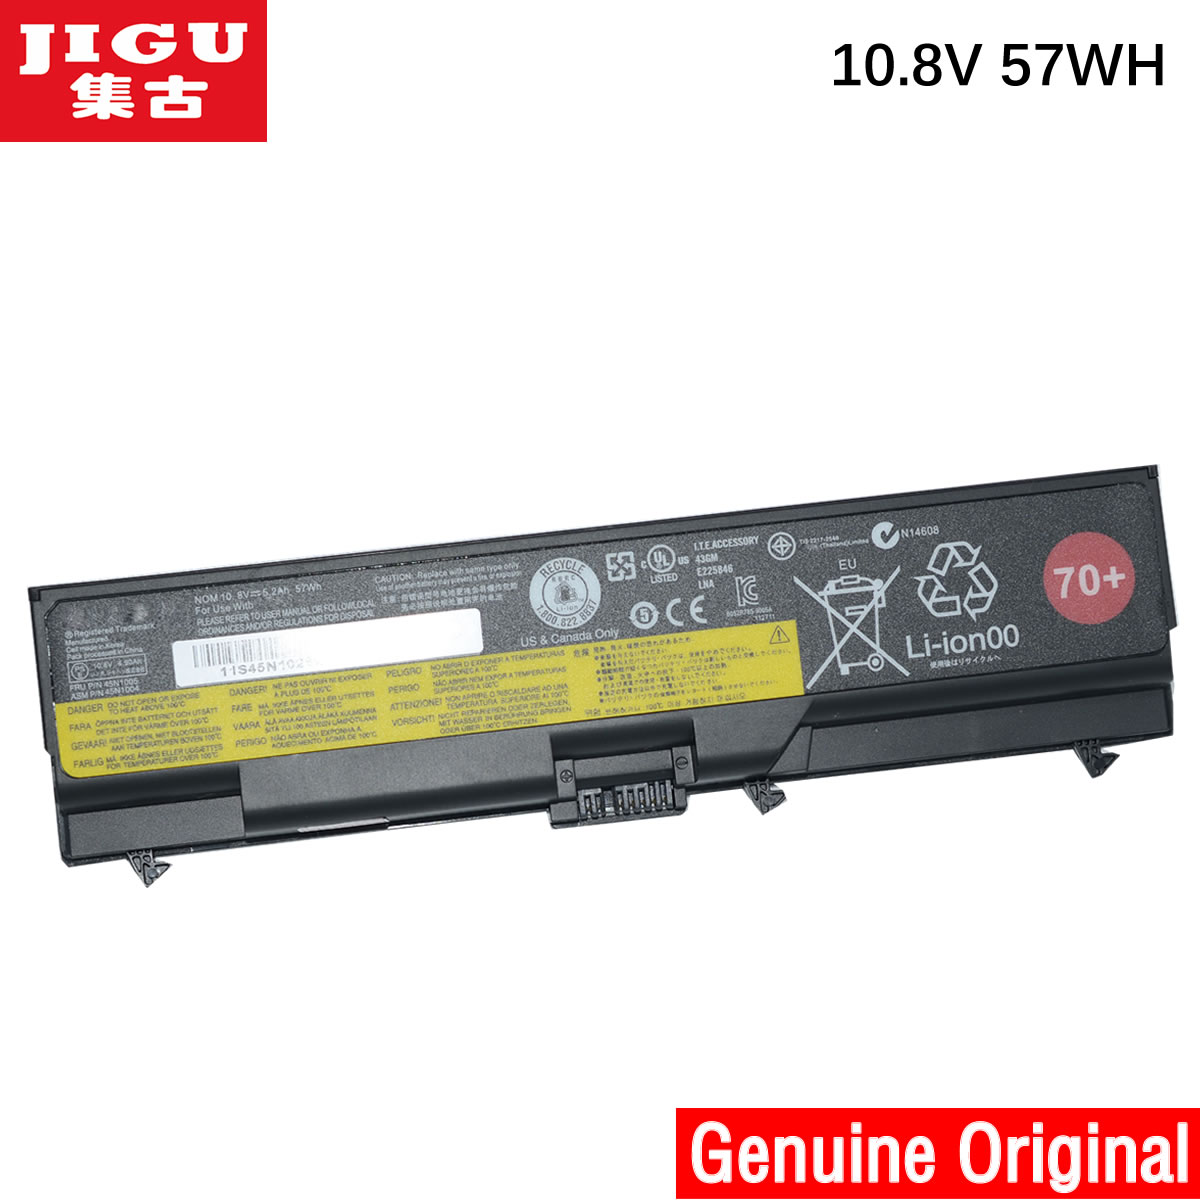 JIGU Original Laptop <font><b>Battery</b></font> For <font><b>Lenovo</b></font> Thinkpad W530 <font><b>L430</b></font> T430 T530 W530I L530 T430I T530I 48WH image